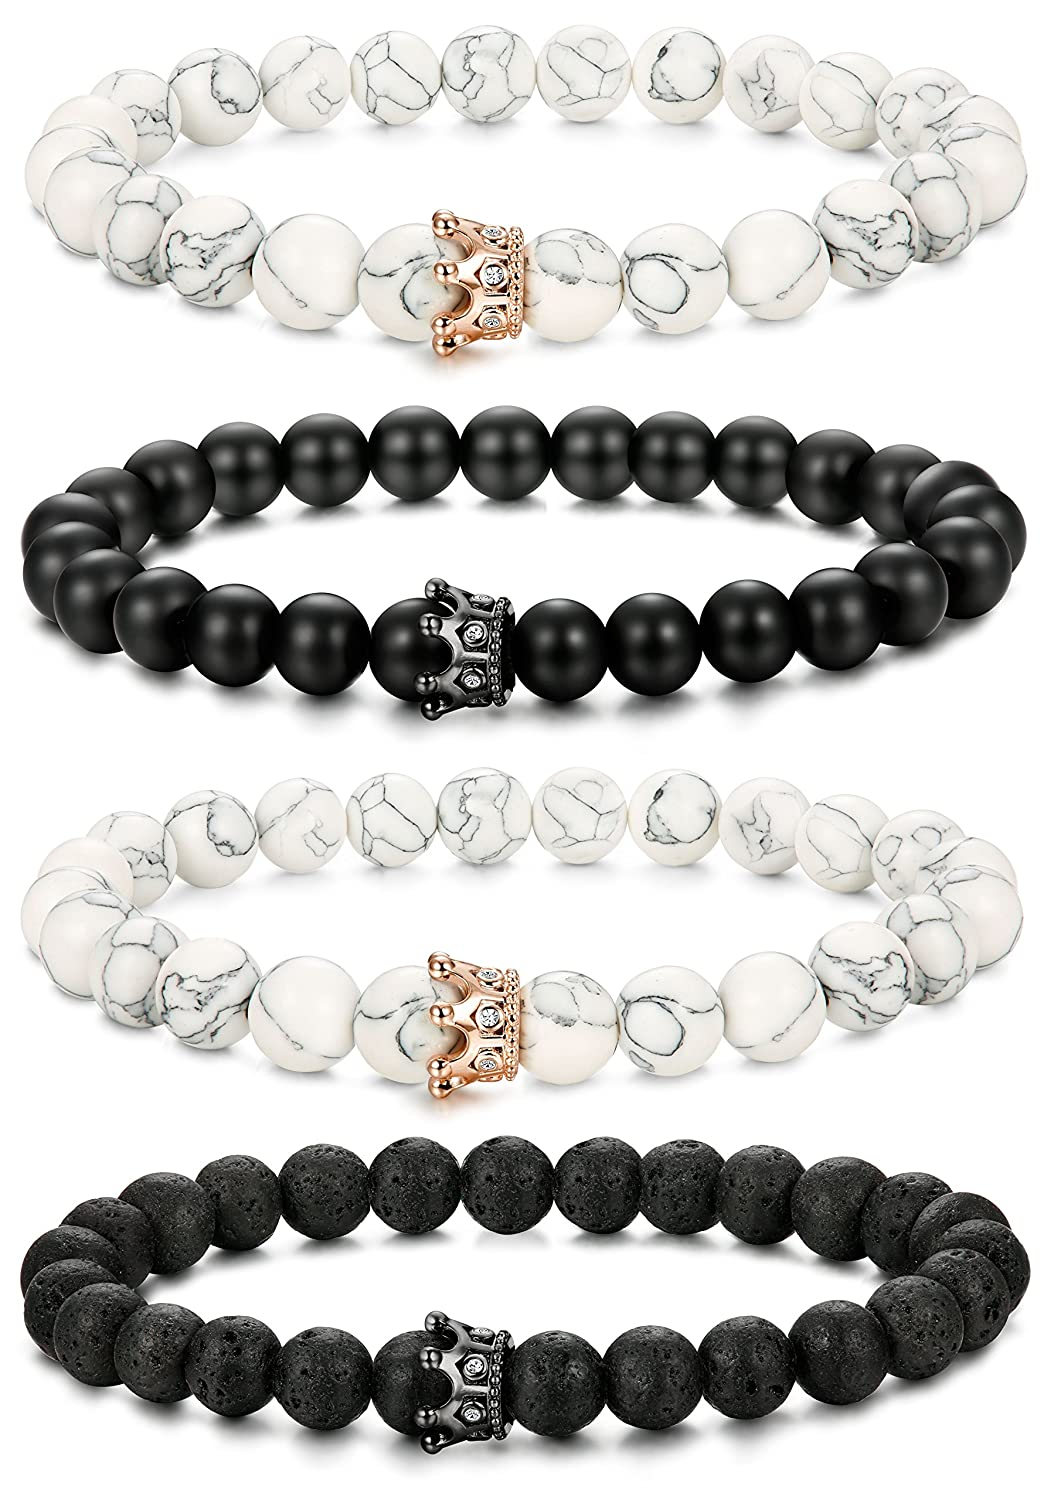 LOLIAS 2-4 Pcs Bead Couples Bracelet for Men Women Crown Queen Bracelet Black Matte Agate & White Howlite Bracelet Adjustable 8MM Beads 4HGB-092-4